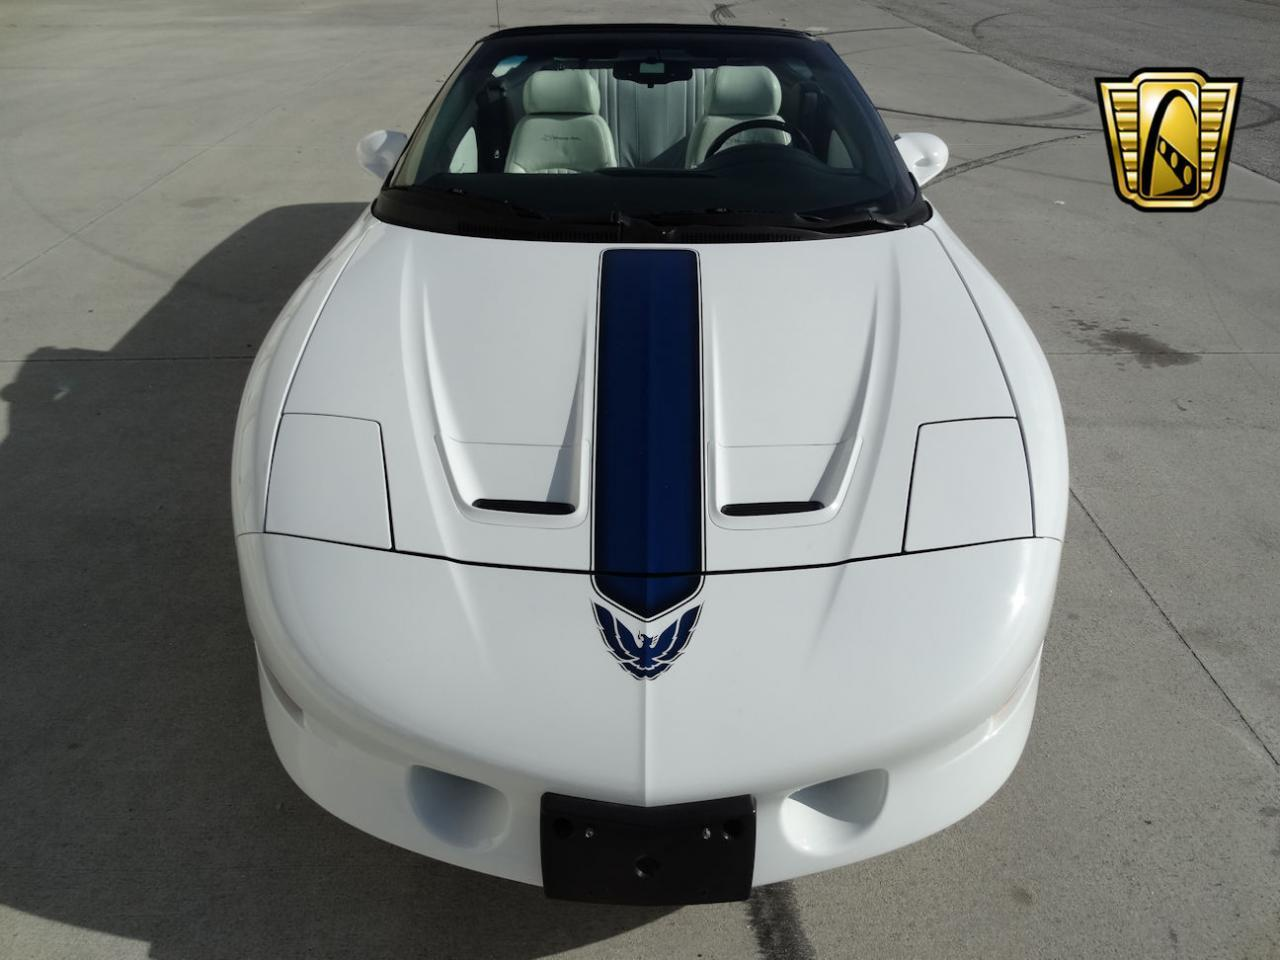 Large Picture of 1994 Pontiac Firebird located in Florida - $22,595.00 Offered by Gateway Classic Cars - Fort Lauderdale - KXRF